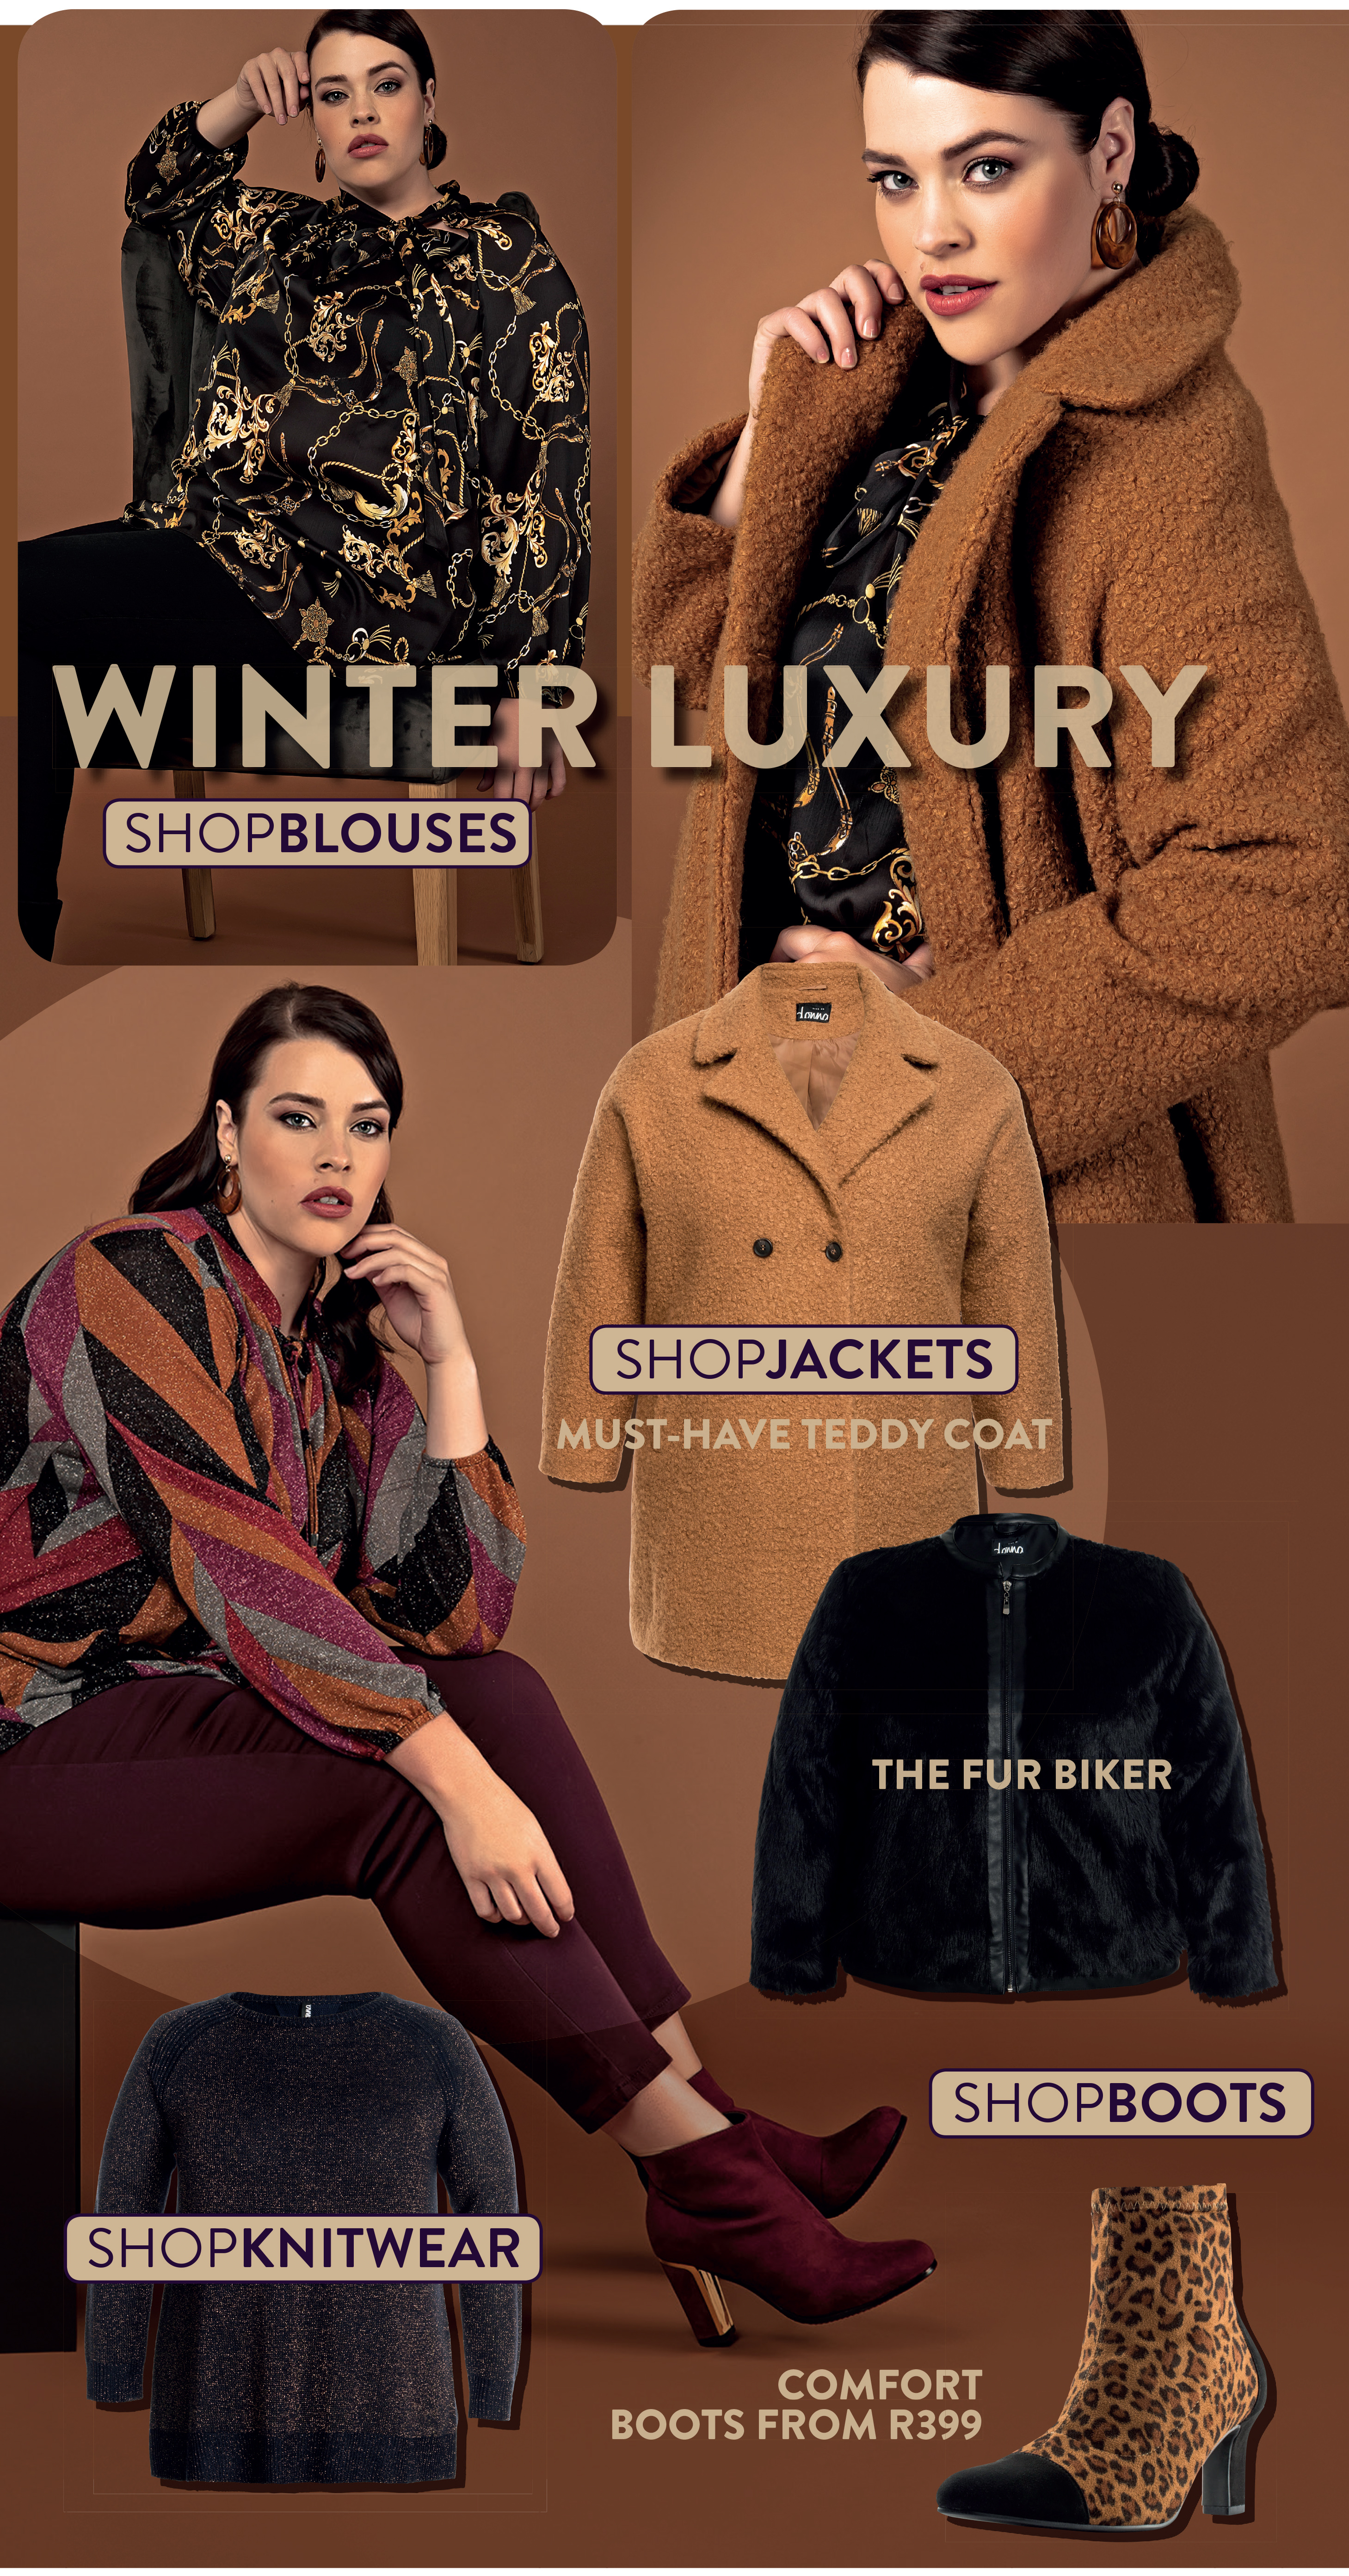 WINTER_luxury-emailer(MAY)